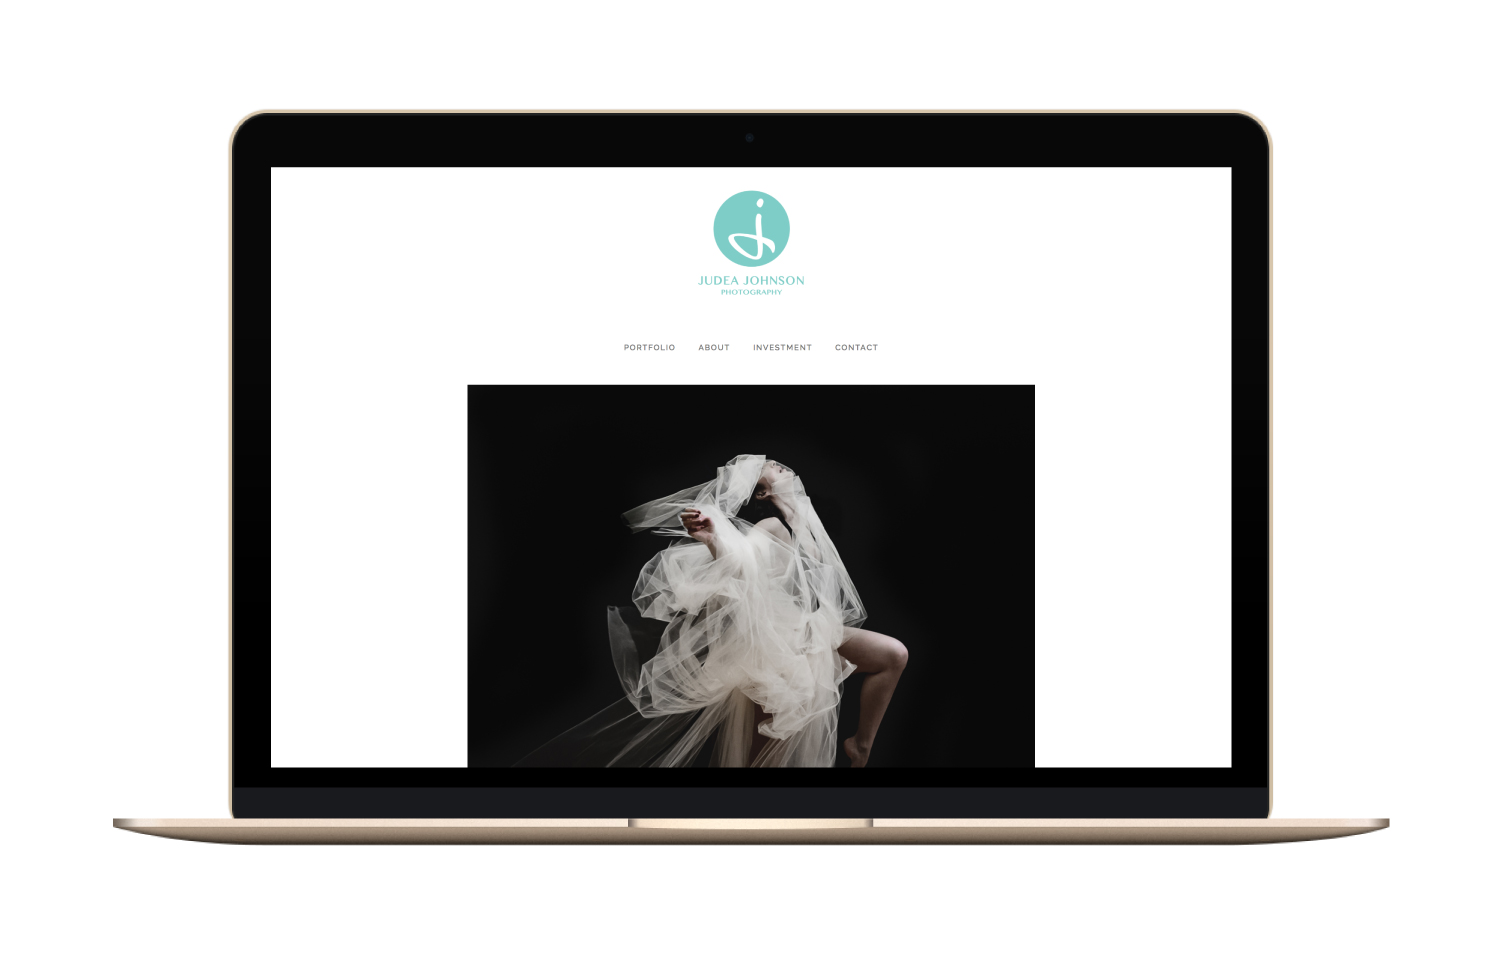 Judea Johnson | Branding & Web Design | Bravebird Studio